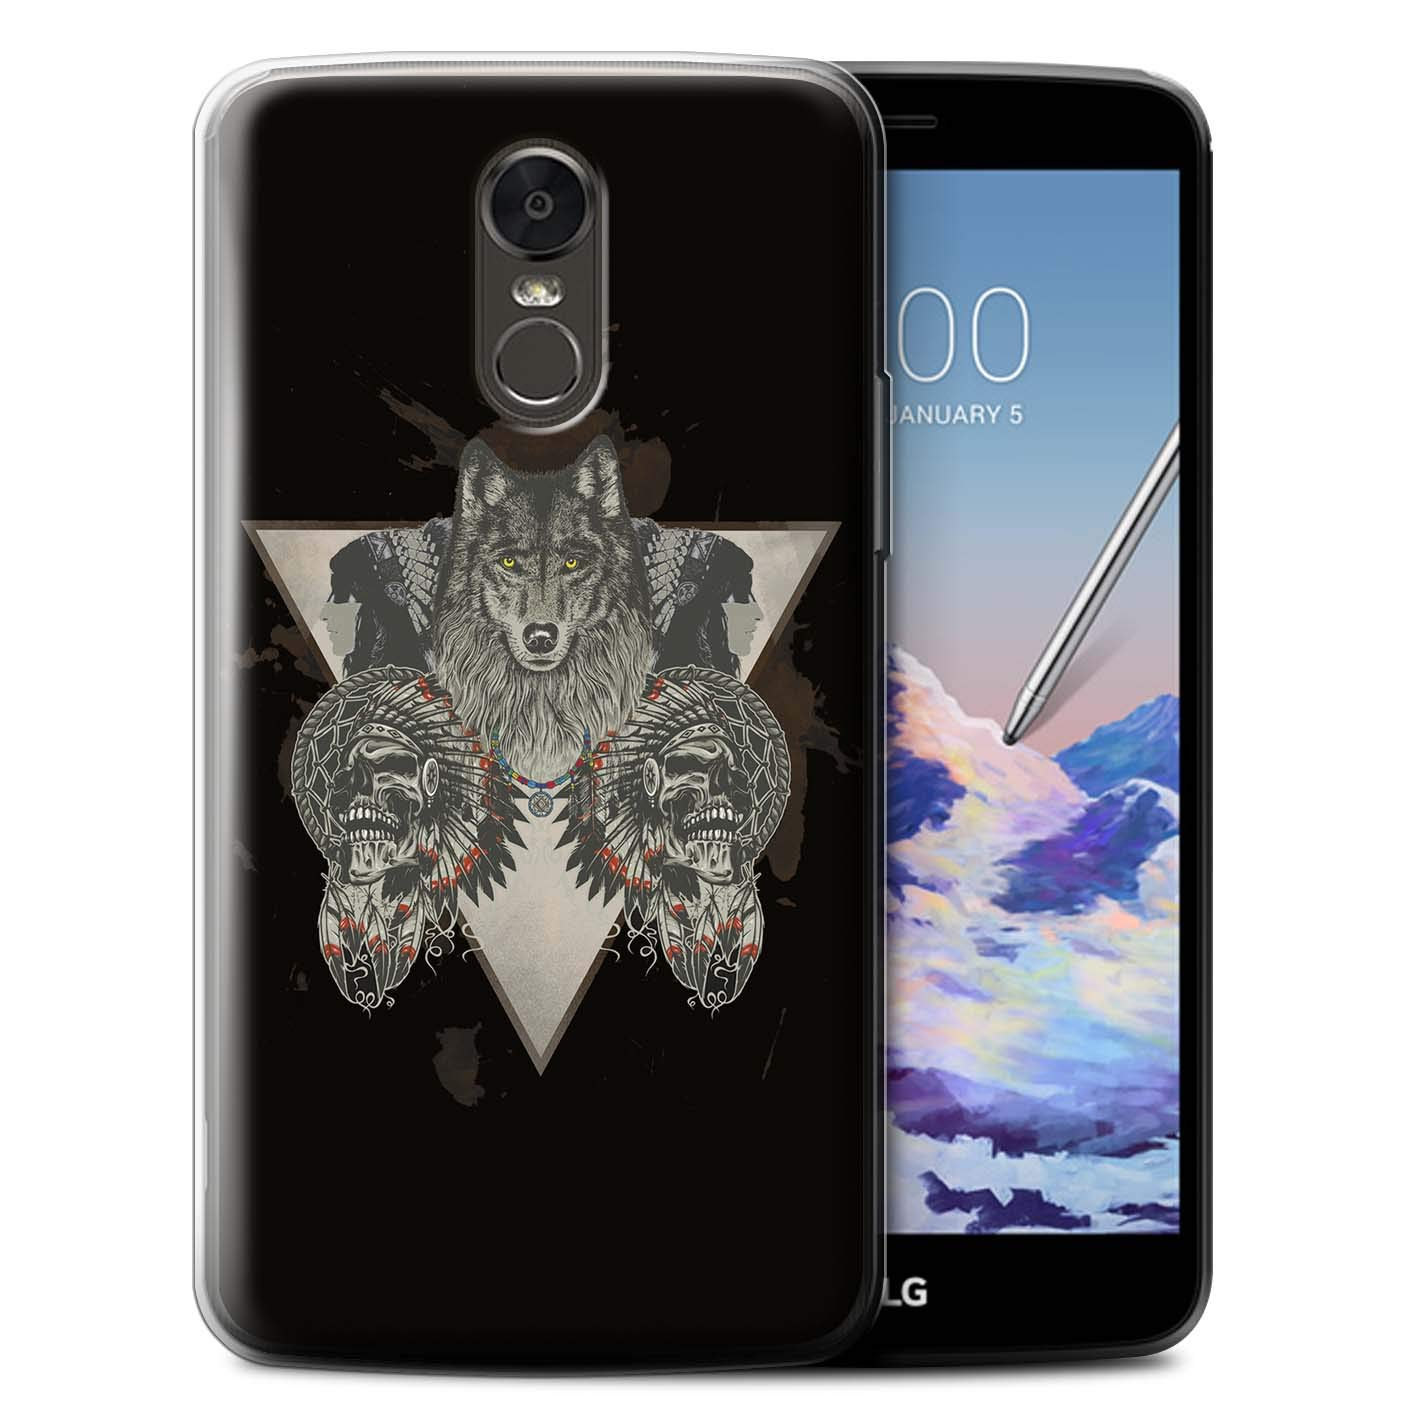 Phone Case for LG Stylus 3/Stylo 3/K10 Pro Wild Animal Predator Wolf Tribal Indian Skull Warrior Design Transparent Clear Ultra Soft Flexi Silicone Gel/TPU Bumper Cover